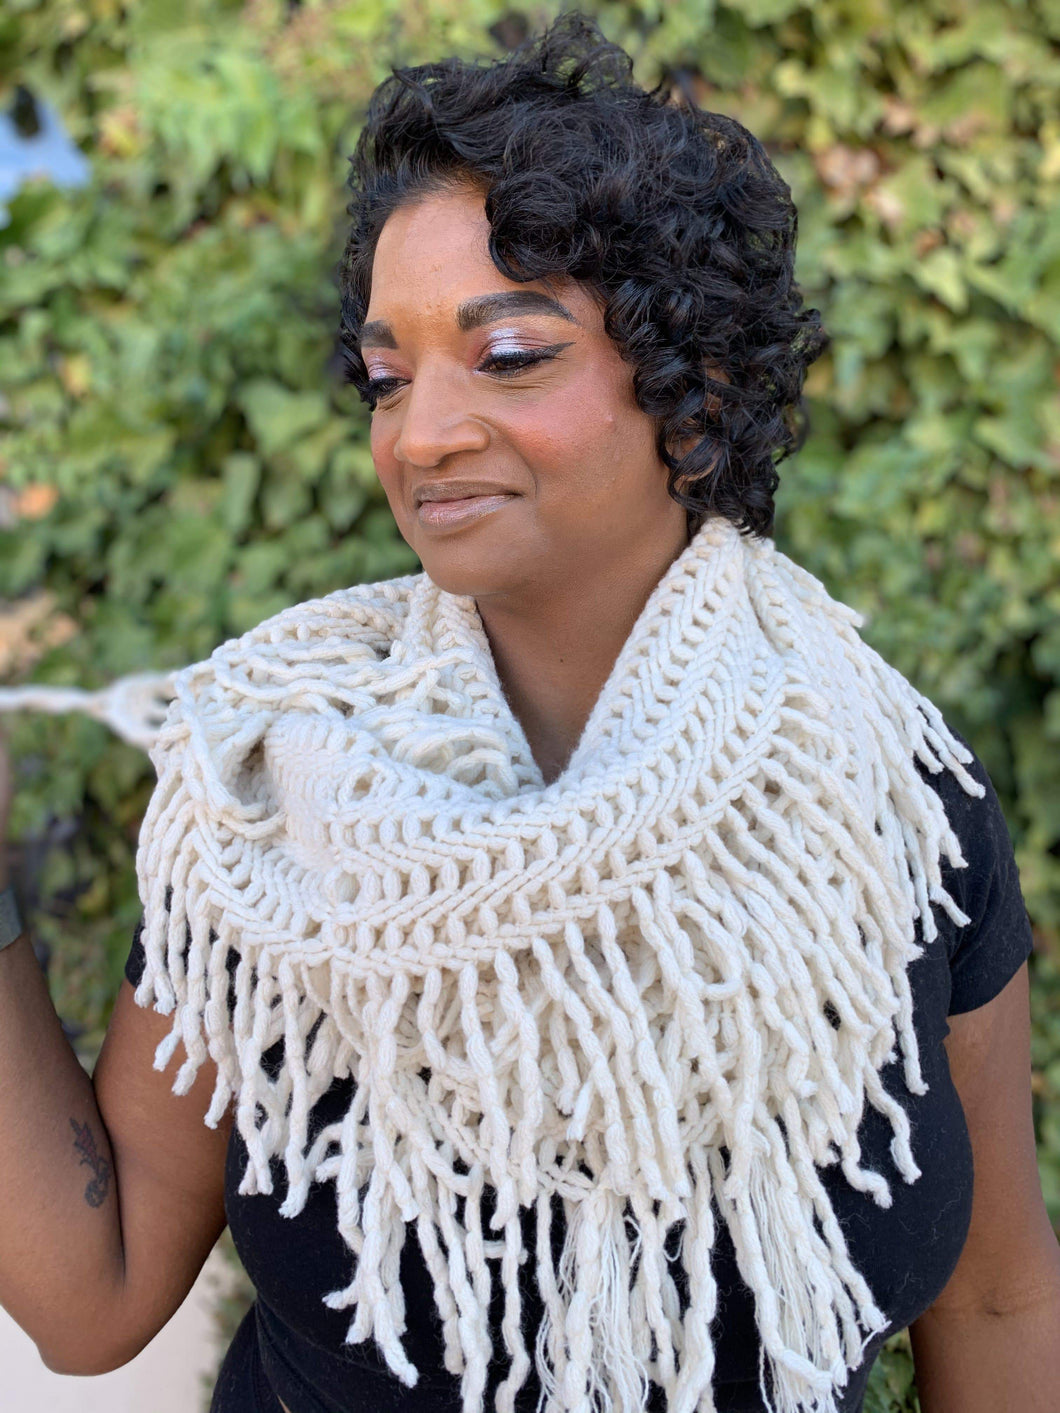 Leto Collection Scarves Lattice Knit Tassel Infinity Scarf - Ivory